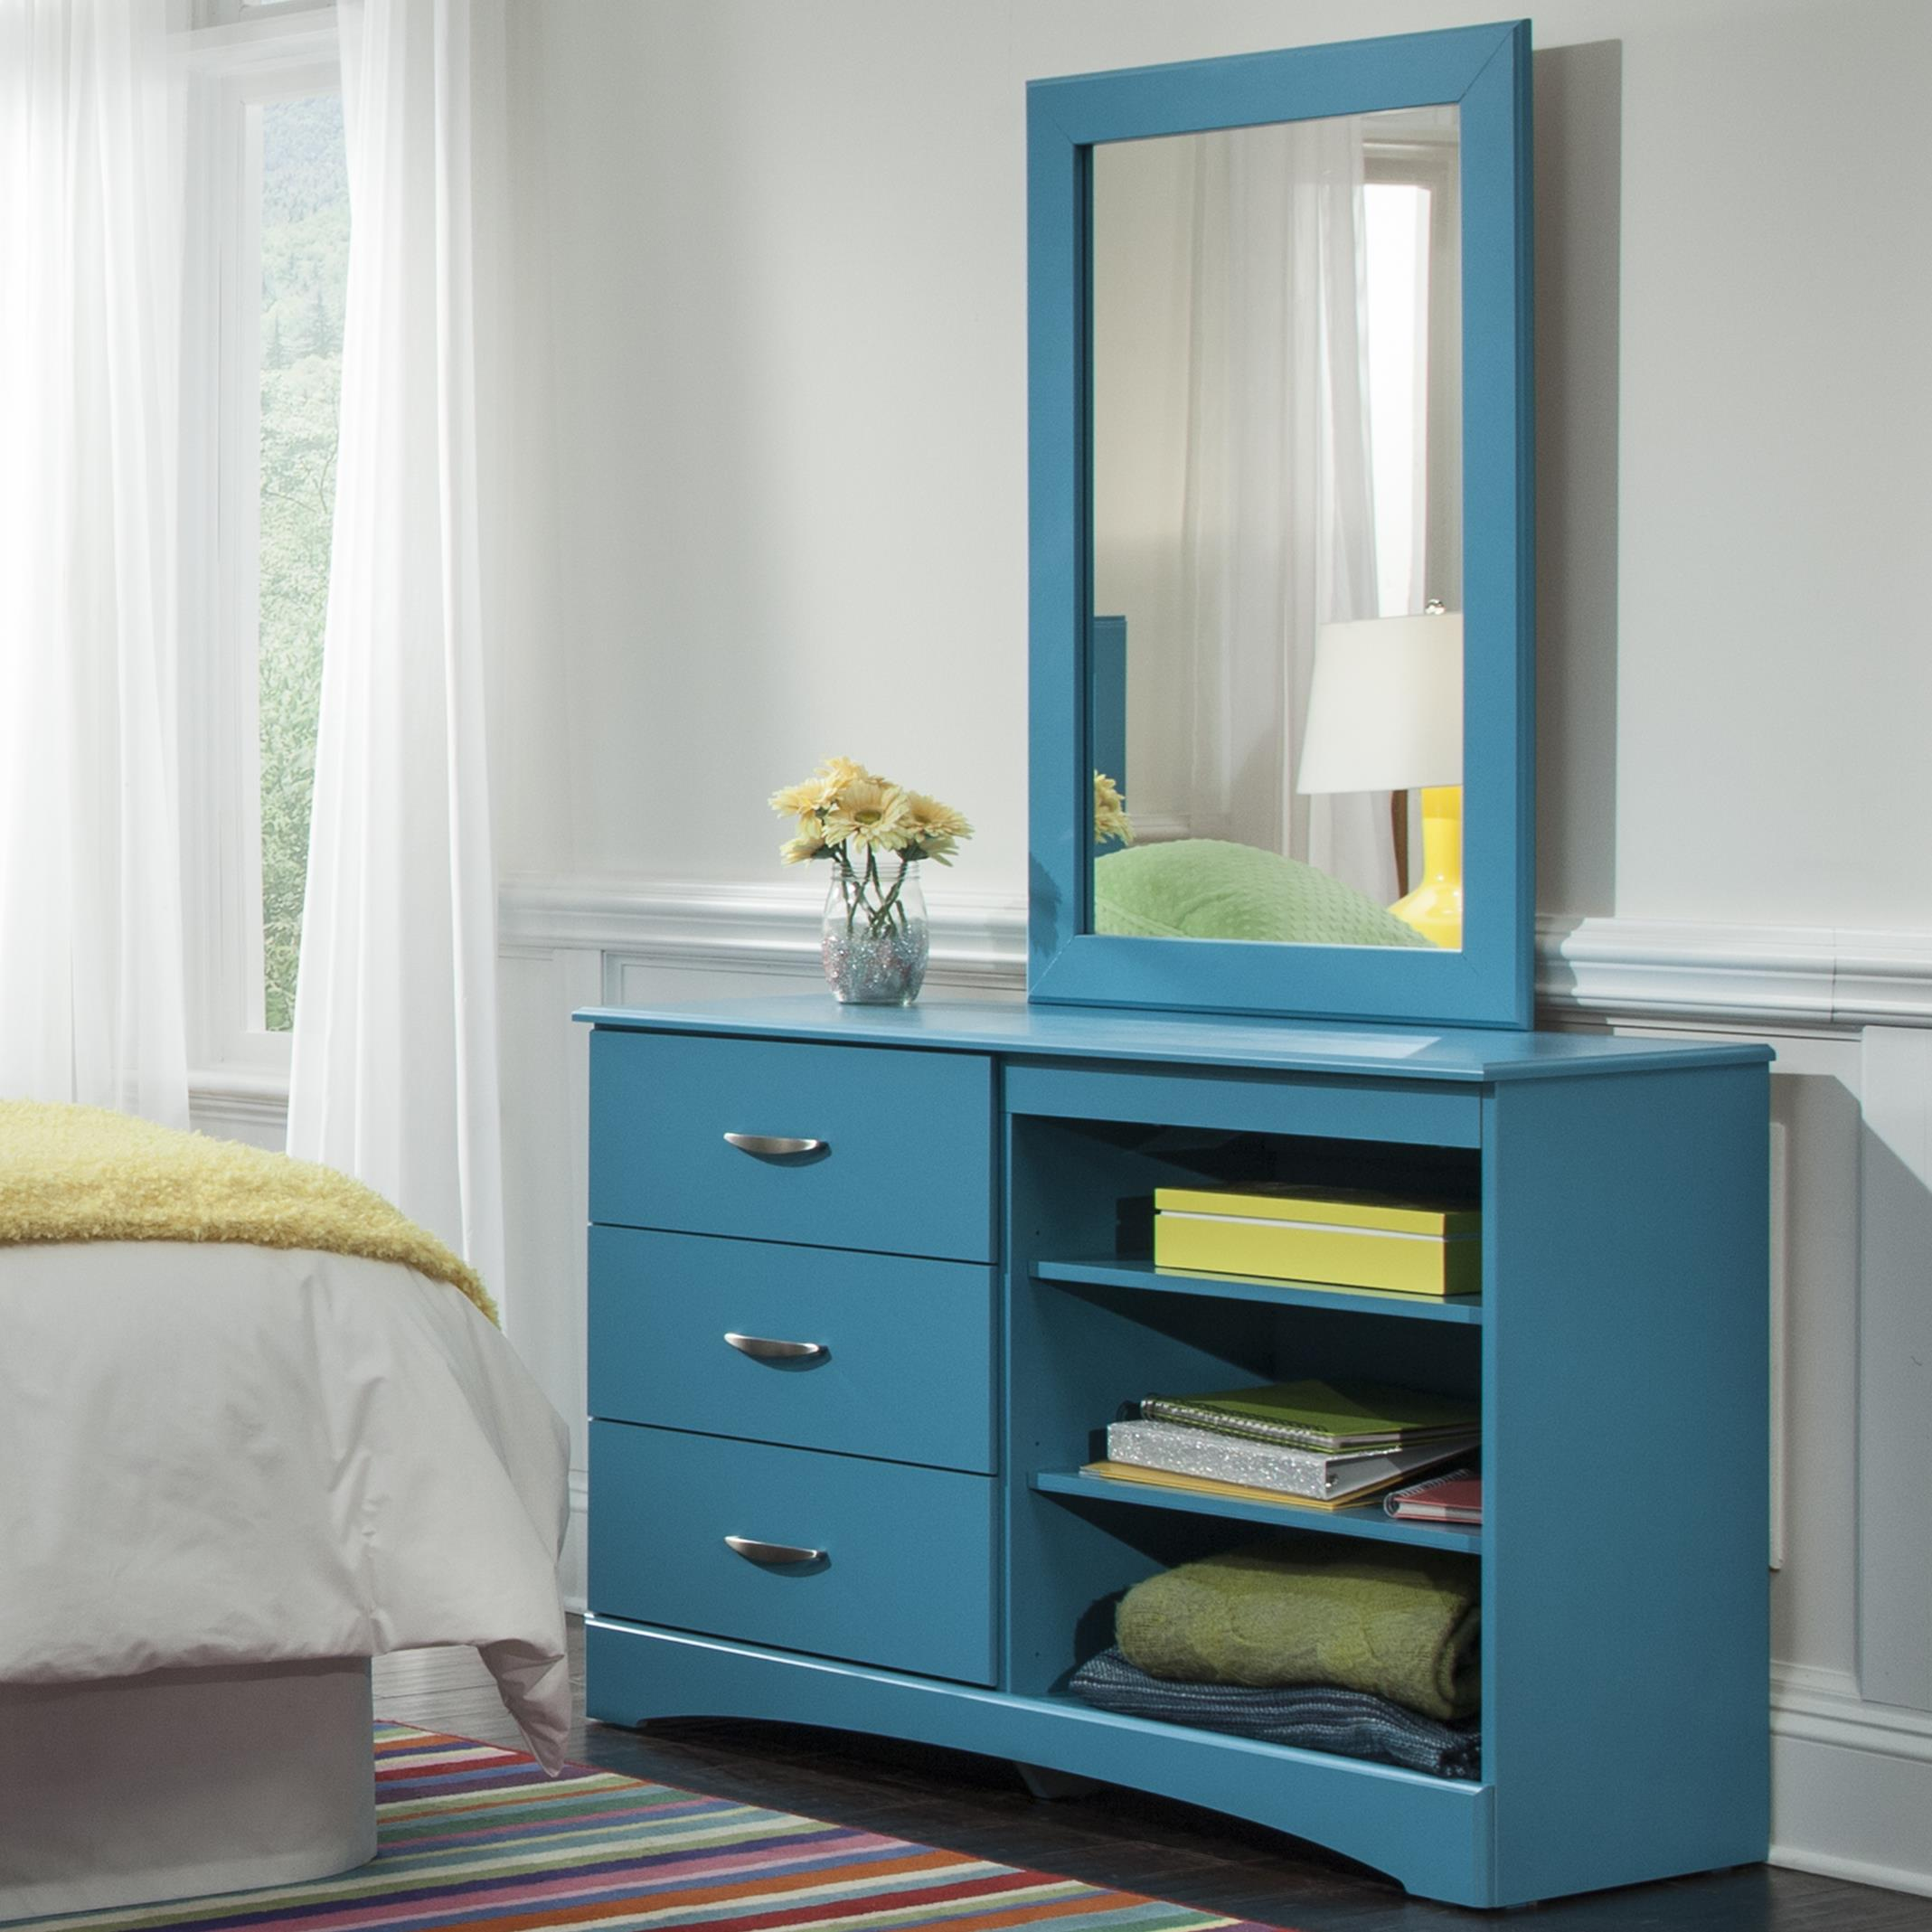 Kith Furniture 173 Turquoise Mirror and Dresser Set - Item Number: 173-01+12